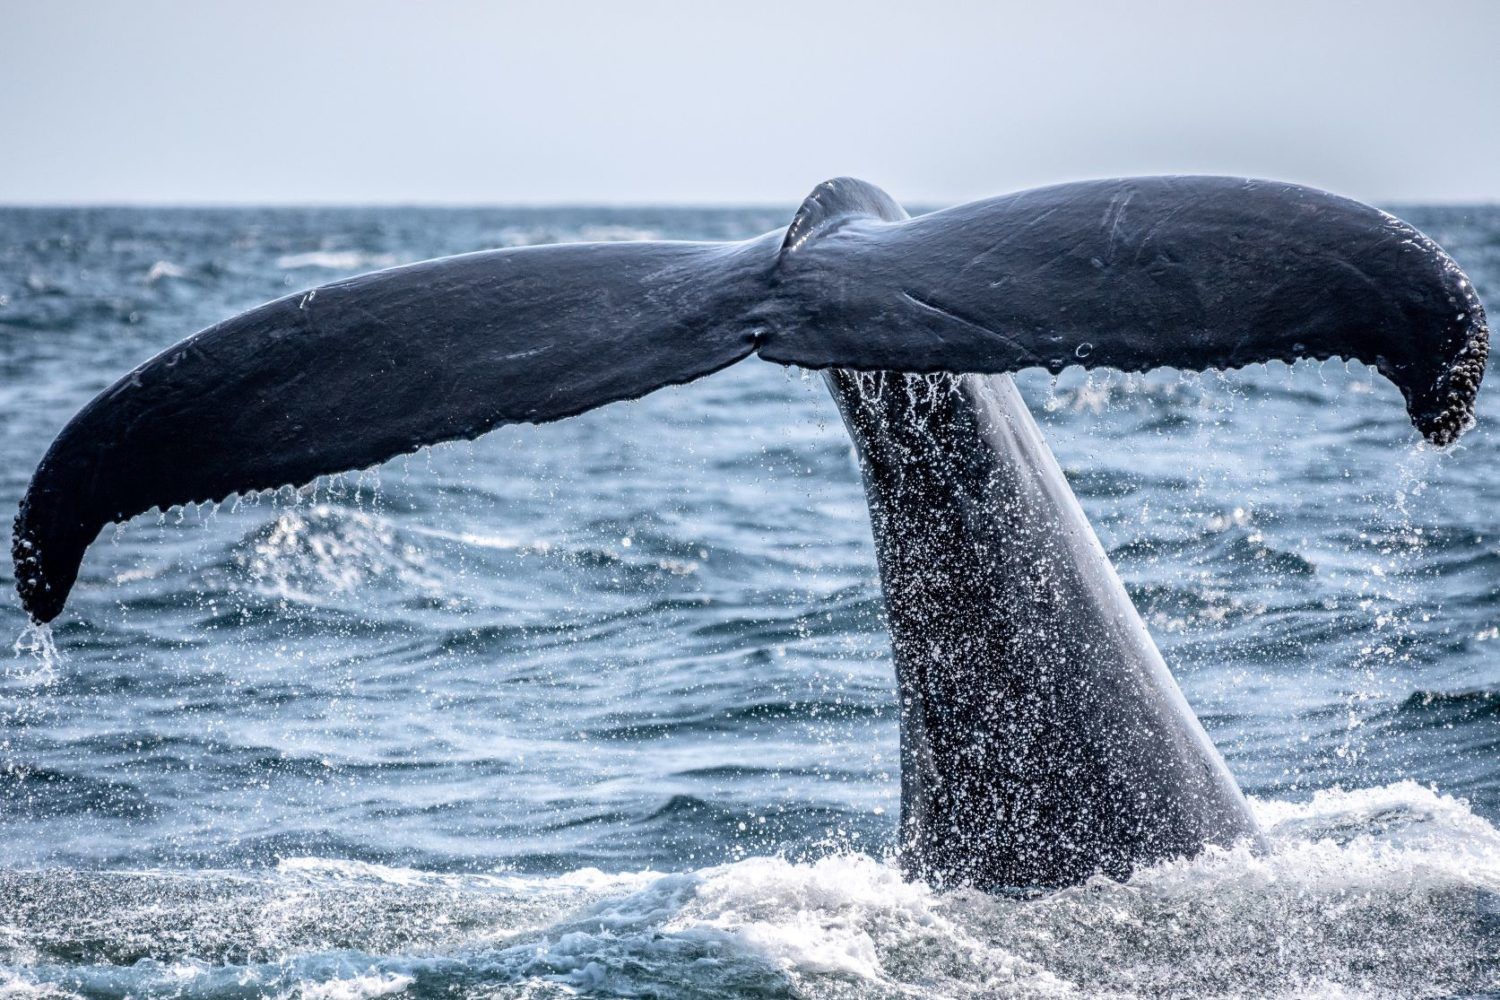 Whale watching in Patagonia Chile